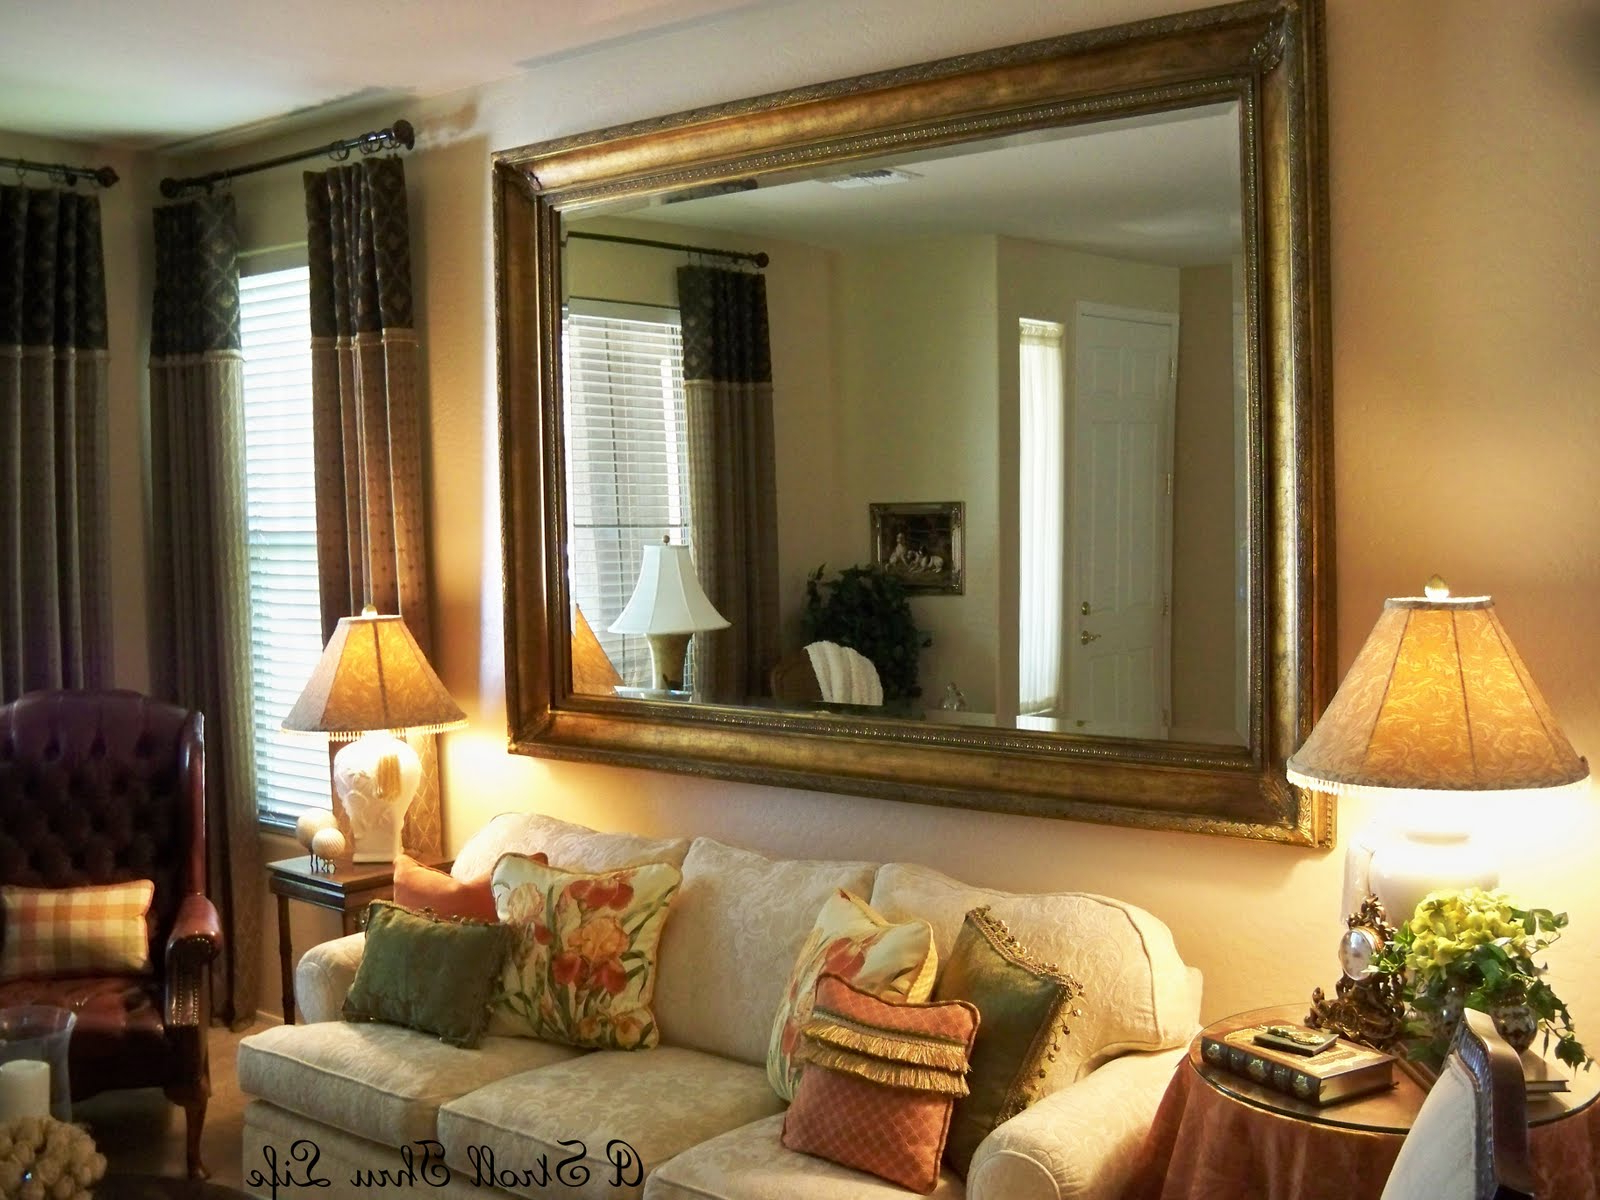 Latest Living Room Design: Big Decorative Wall Mirrors Design, Wall Inside Cheap Big Wall Mirrors (View 19 of 20)